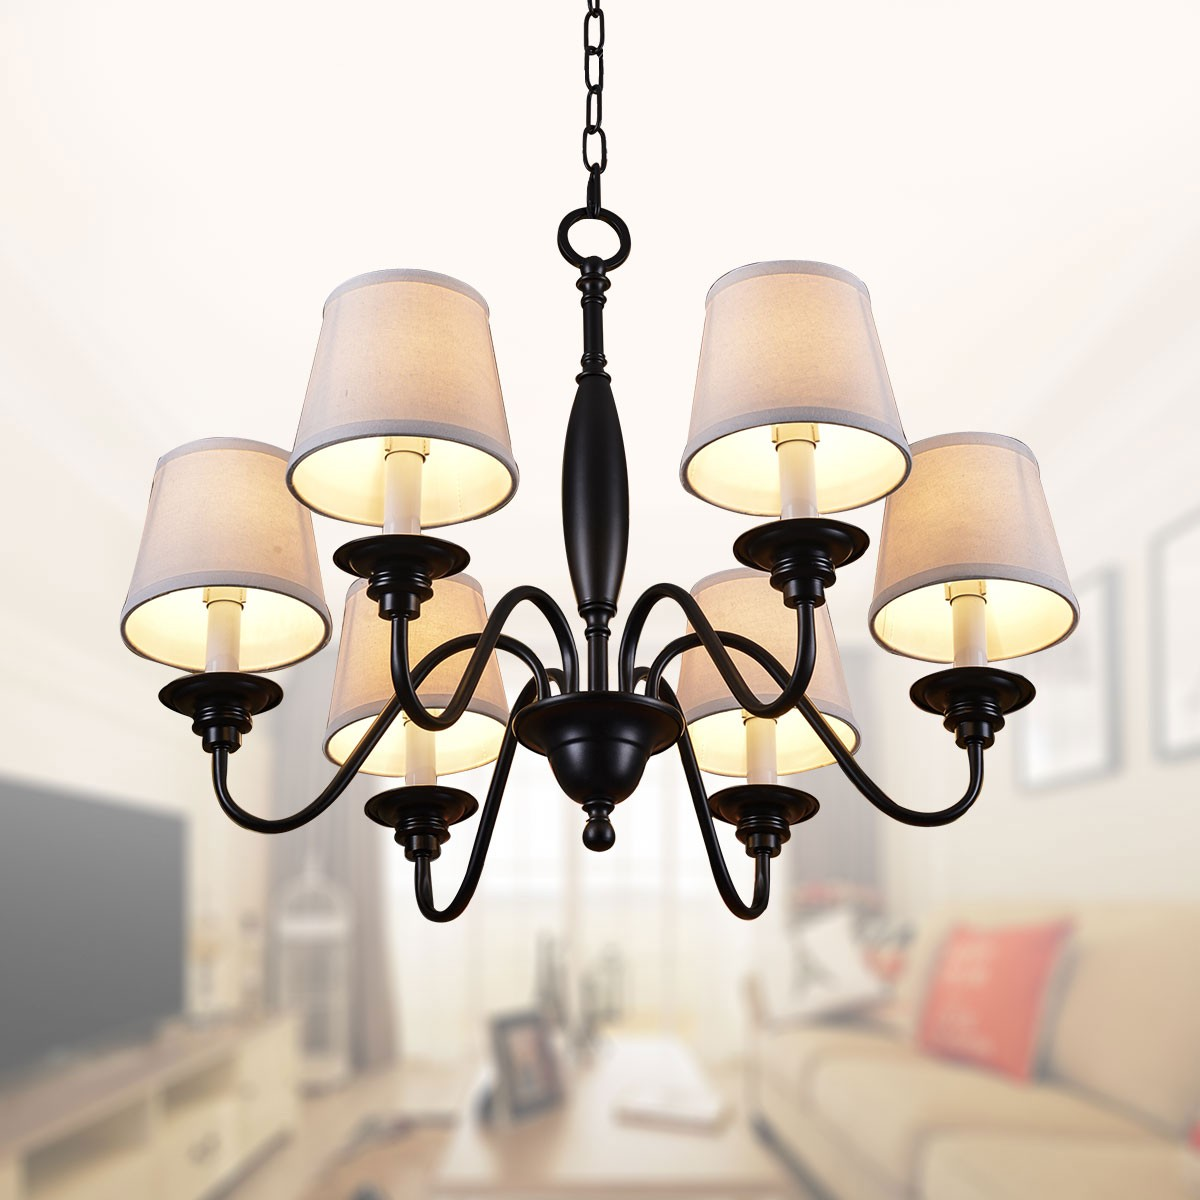 6-Light Black Wrought Iron Chandelier with Cloth Shades (DK-7057-6)